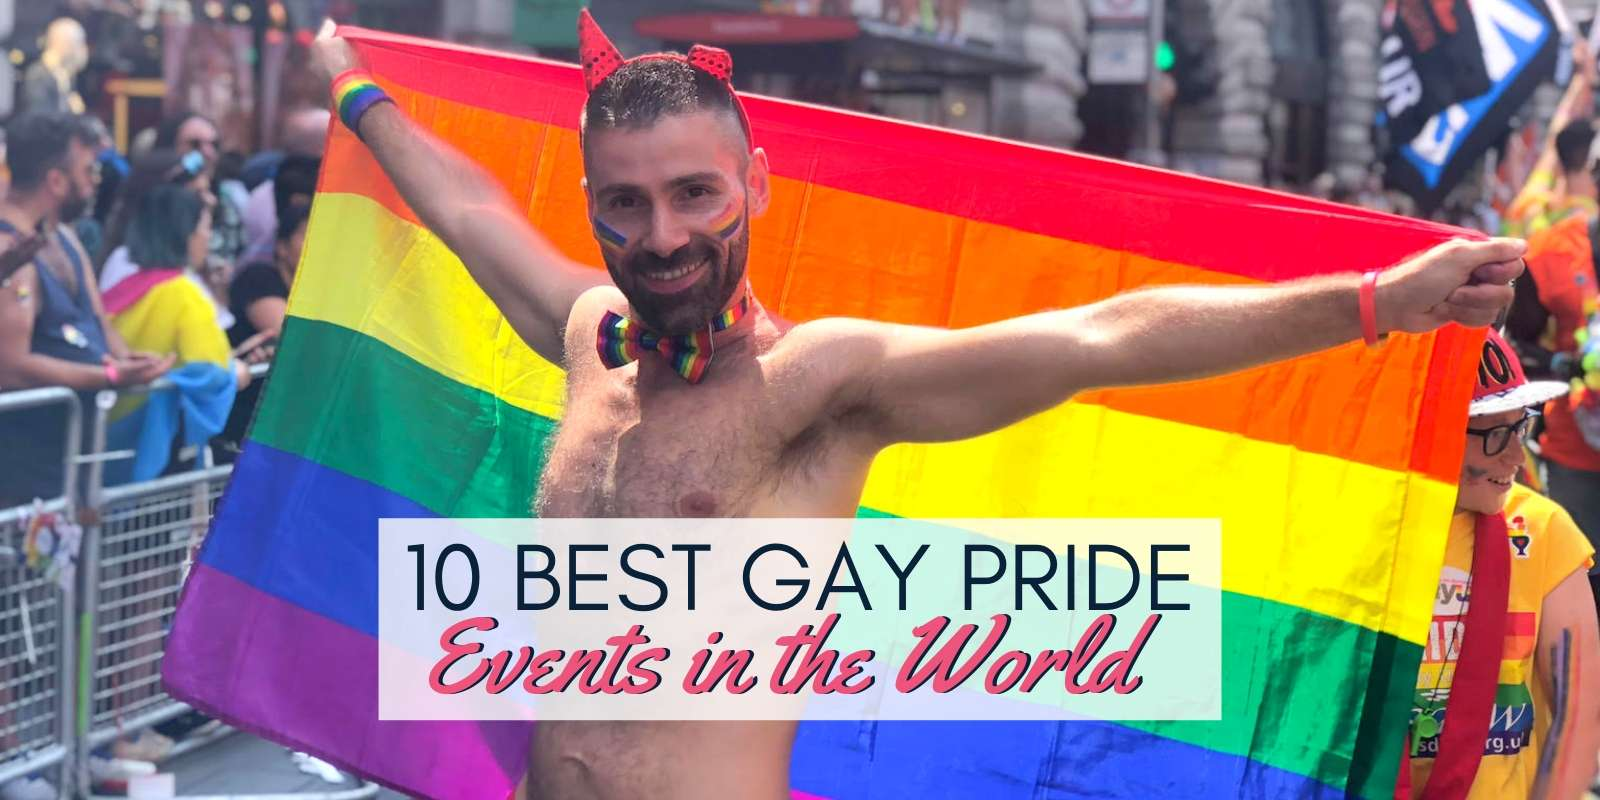 The Nomadic Boys guide to the best Gay Pride events held around the world.